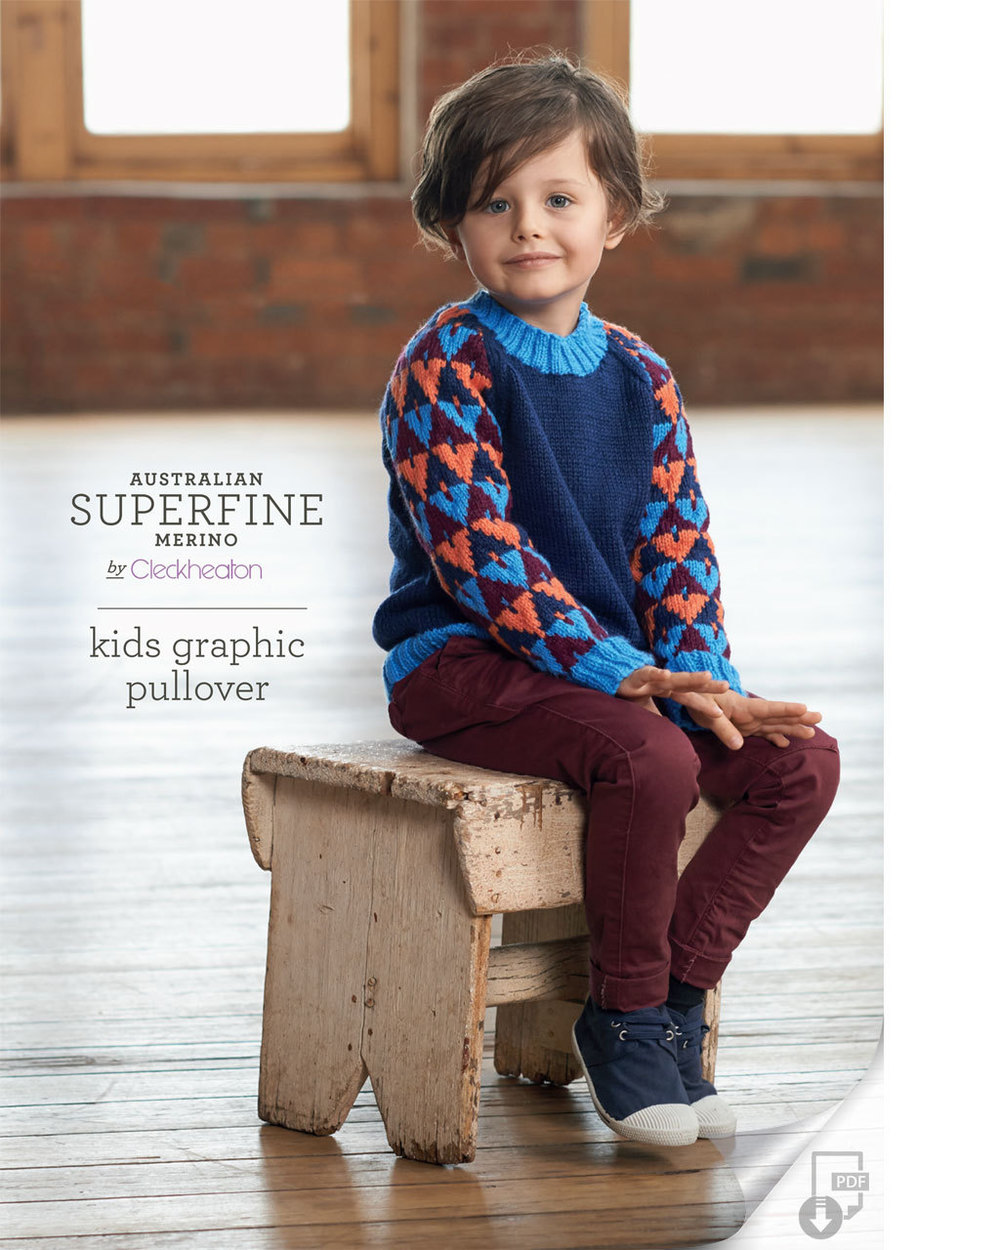 Kids graphic pullover by Cleckheaton1.jpg